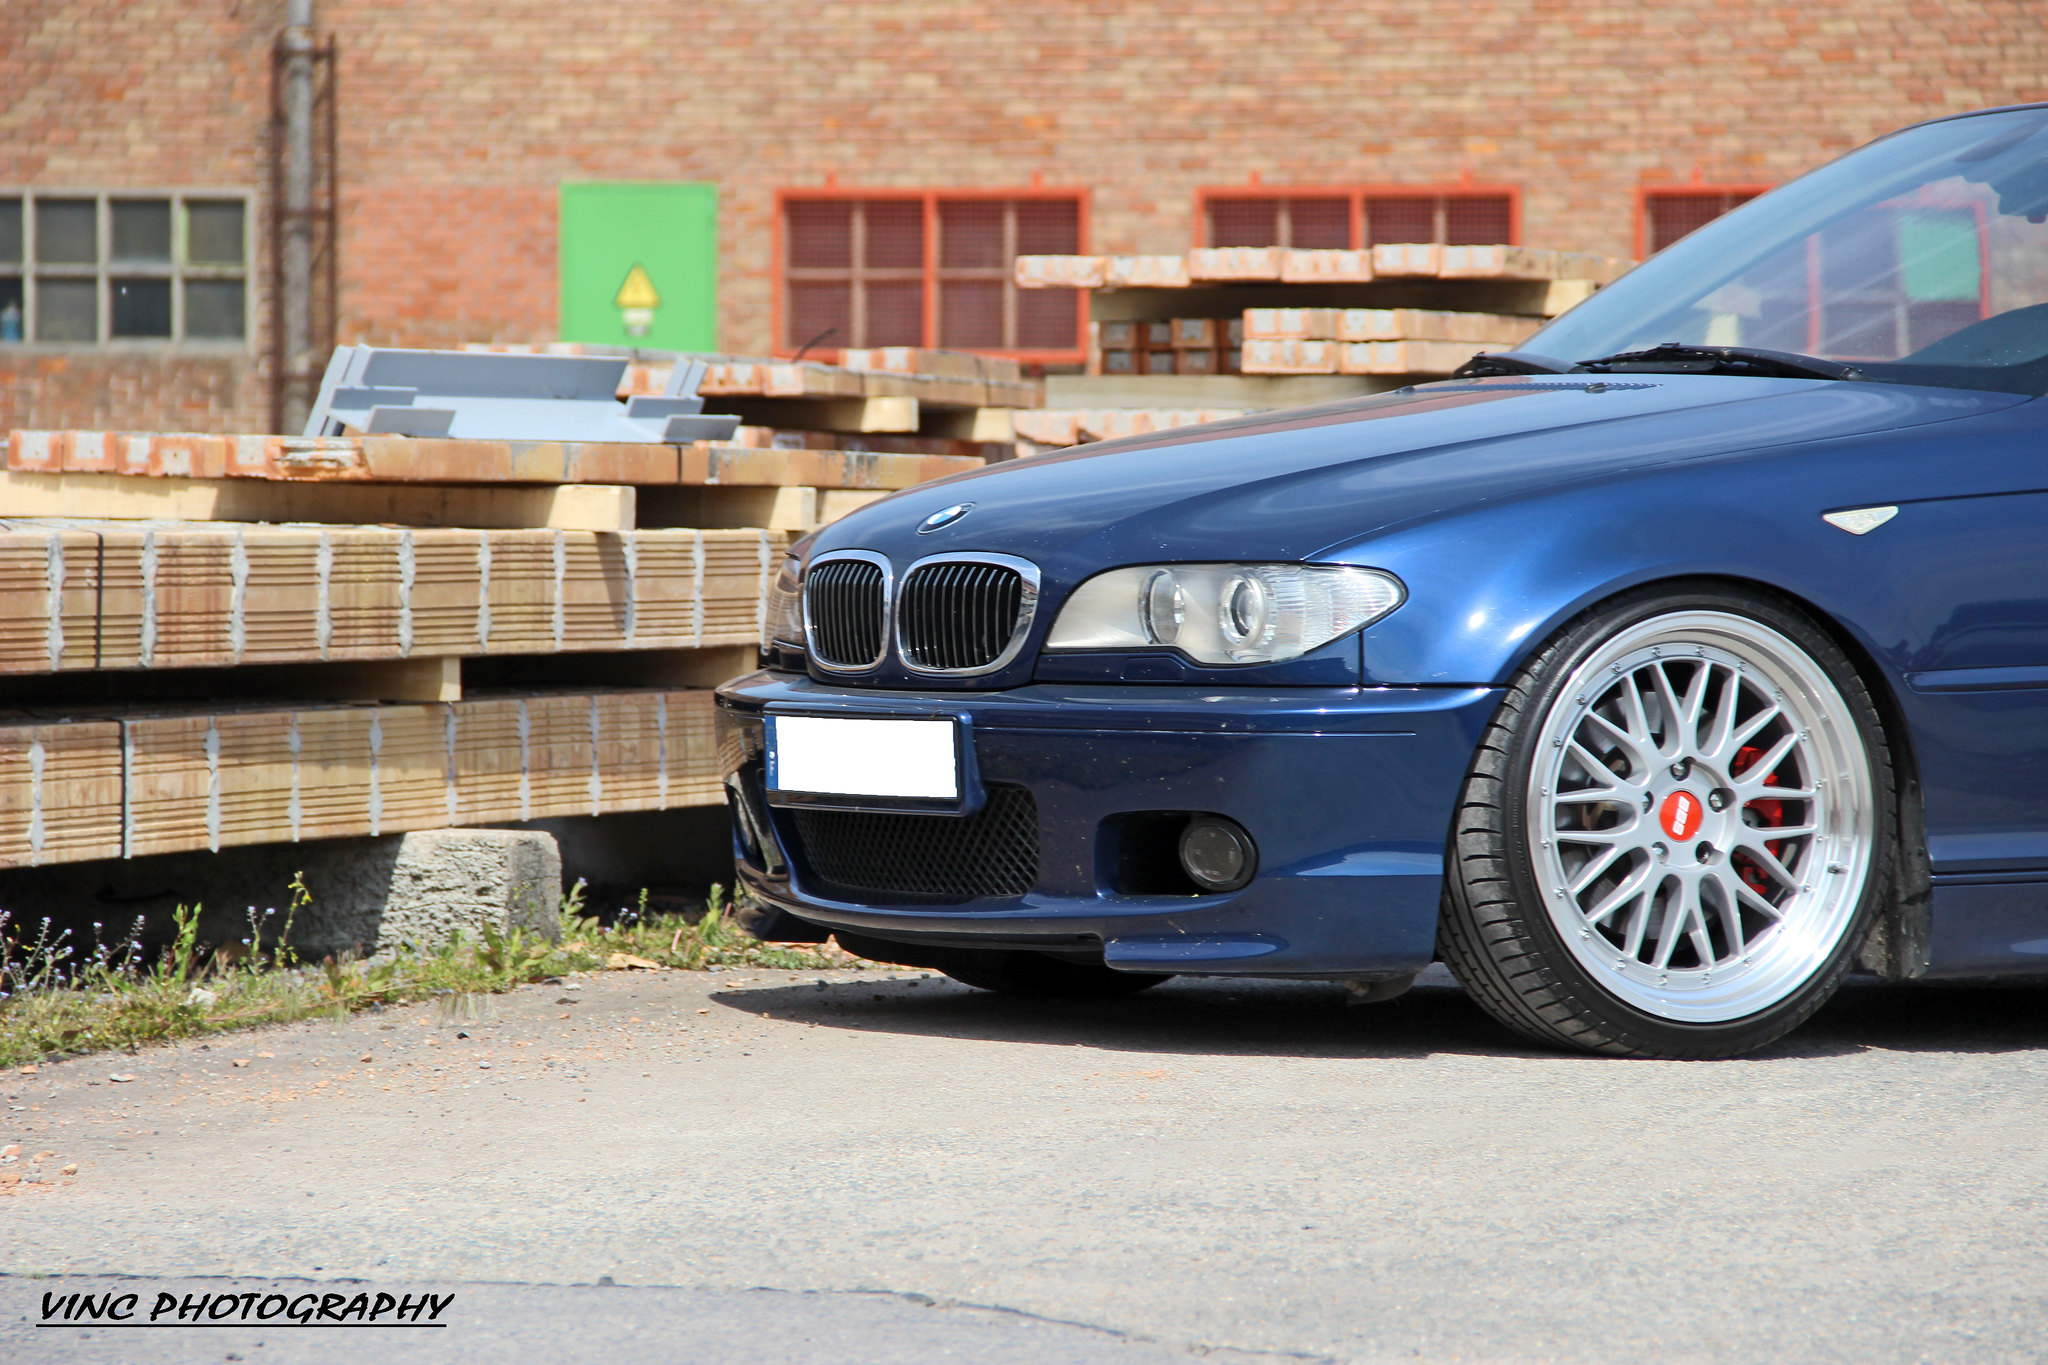 bmw 330 ci e46 cabriolet pack m explore vincphotography flickr photo sharing. Black Bedroom Furniture Sets. Home Design Ideas